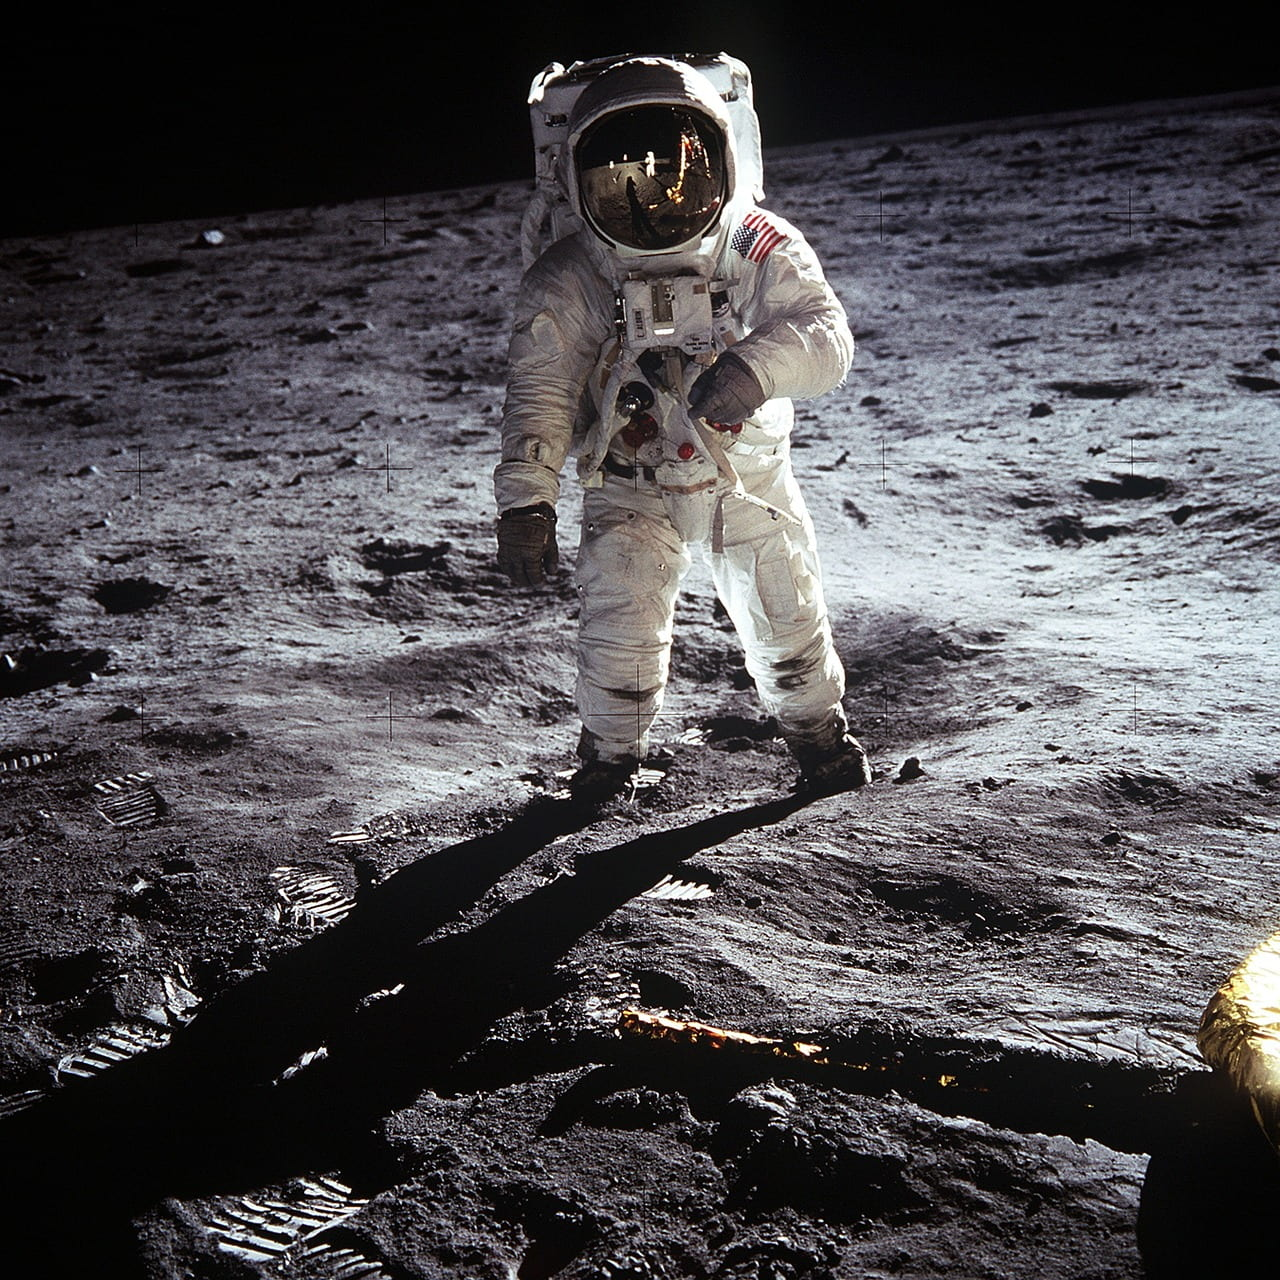 July 20th Is The 50th Anniversary of The Apollo 11 Moon Landing – Here Are Teaching Resources